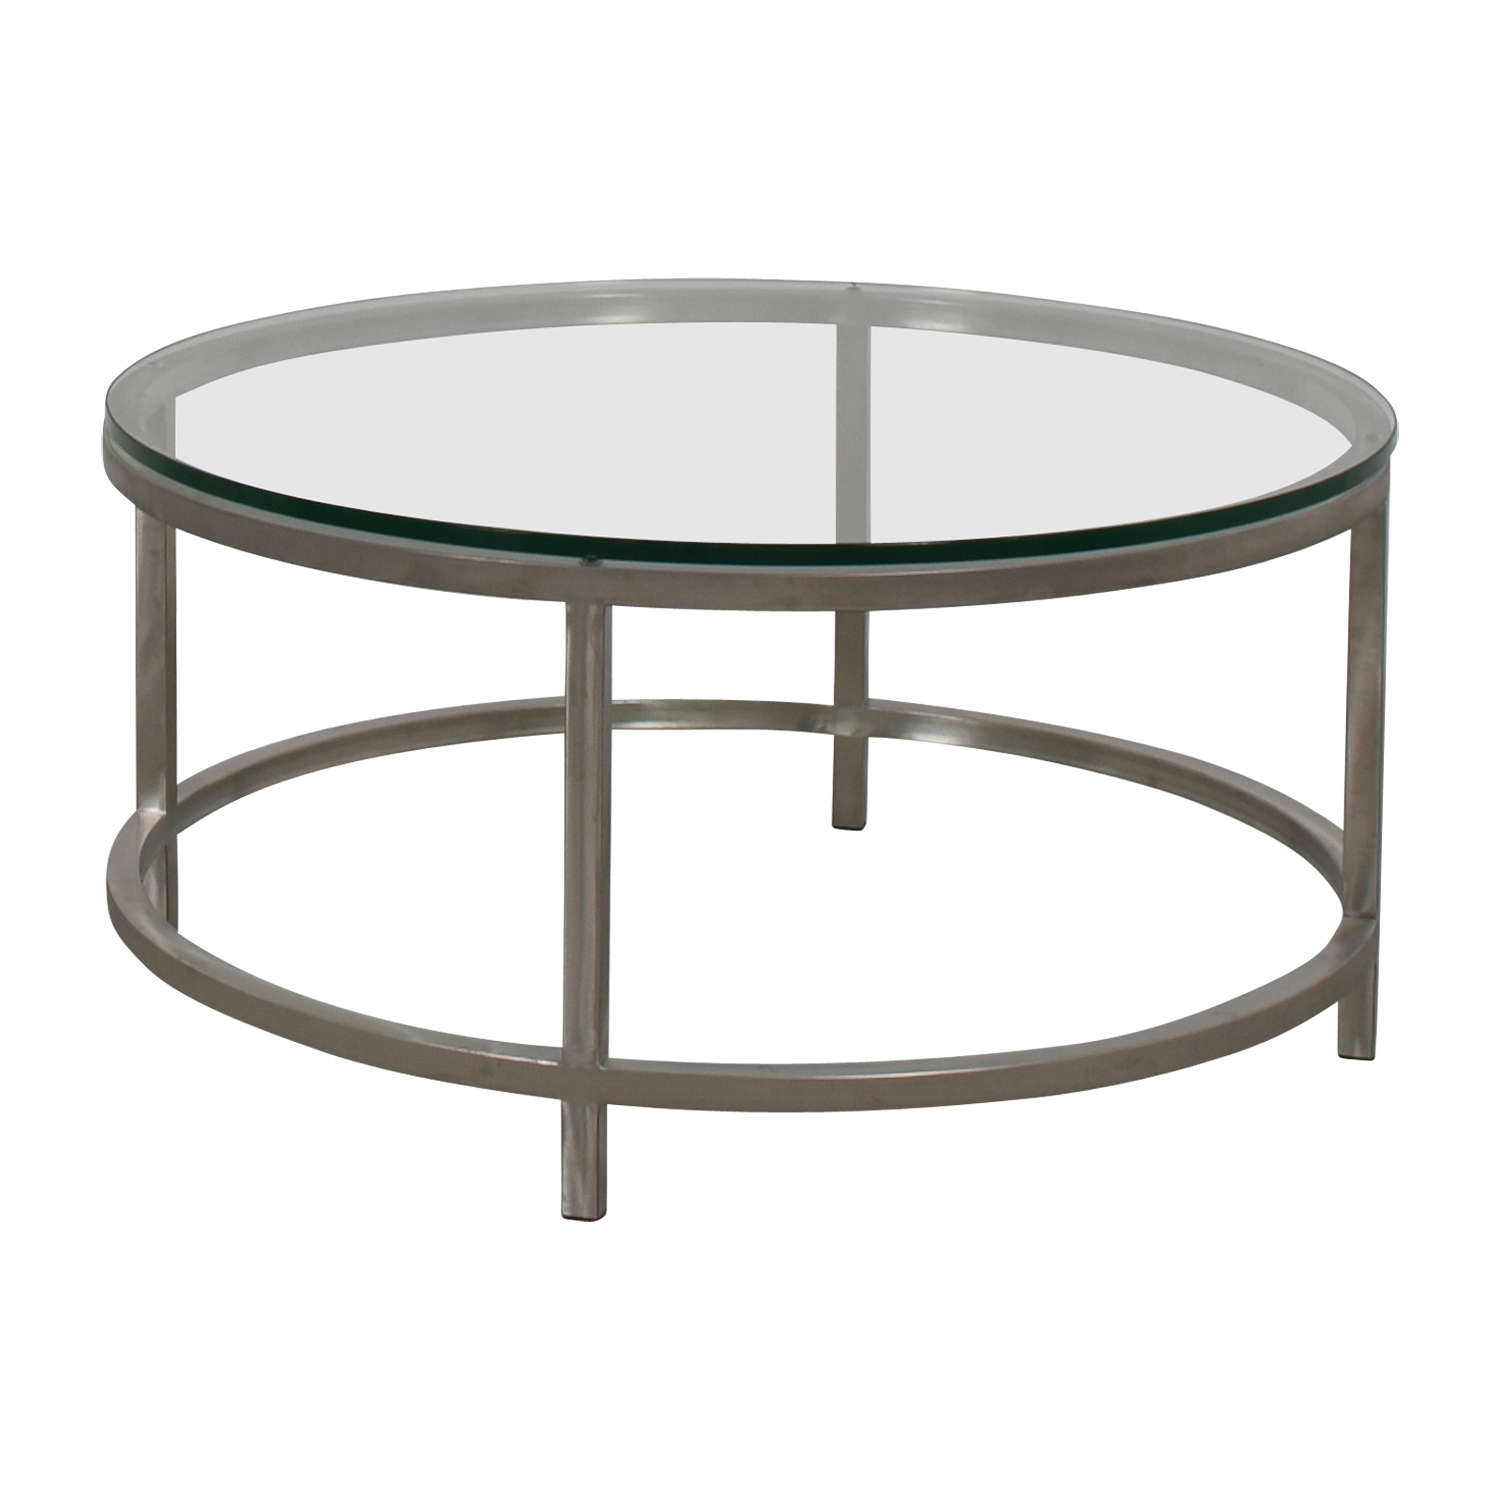 shop Crate & Barrel Era Round Glass and Chrome Coffee Table Crate & Barrel